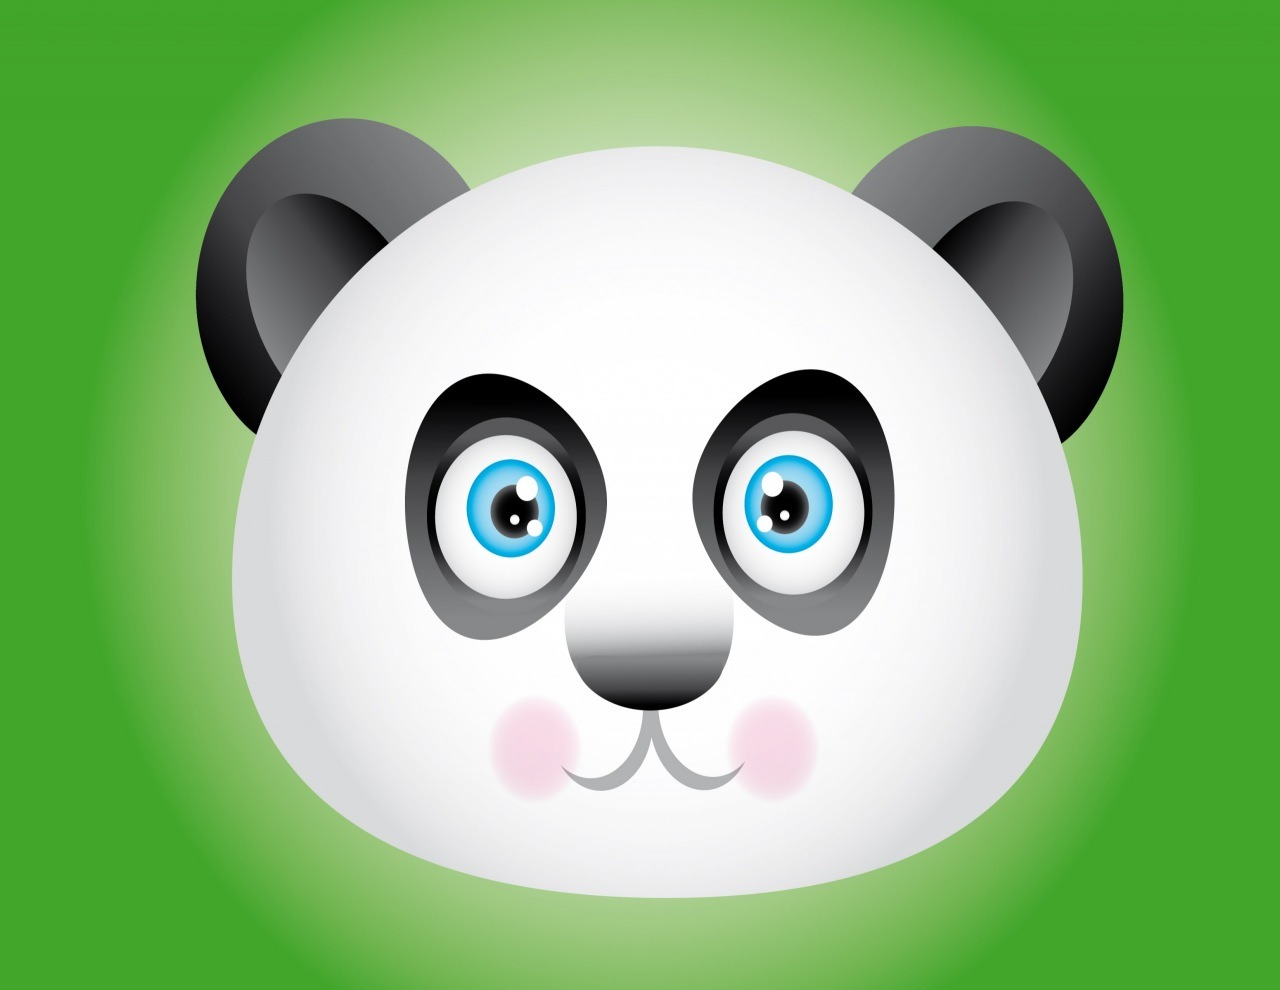 Panda. Drawn by the tutorial -  http://vectips.com/tutorials/create-a-cute-panda-bear-face-icon/